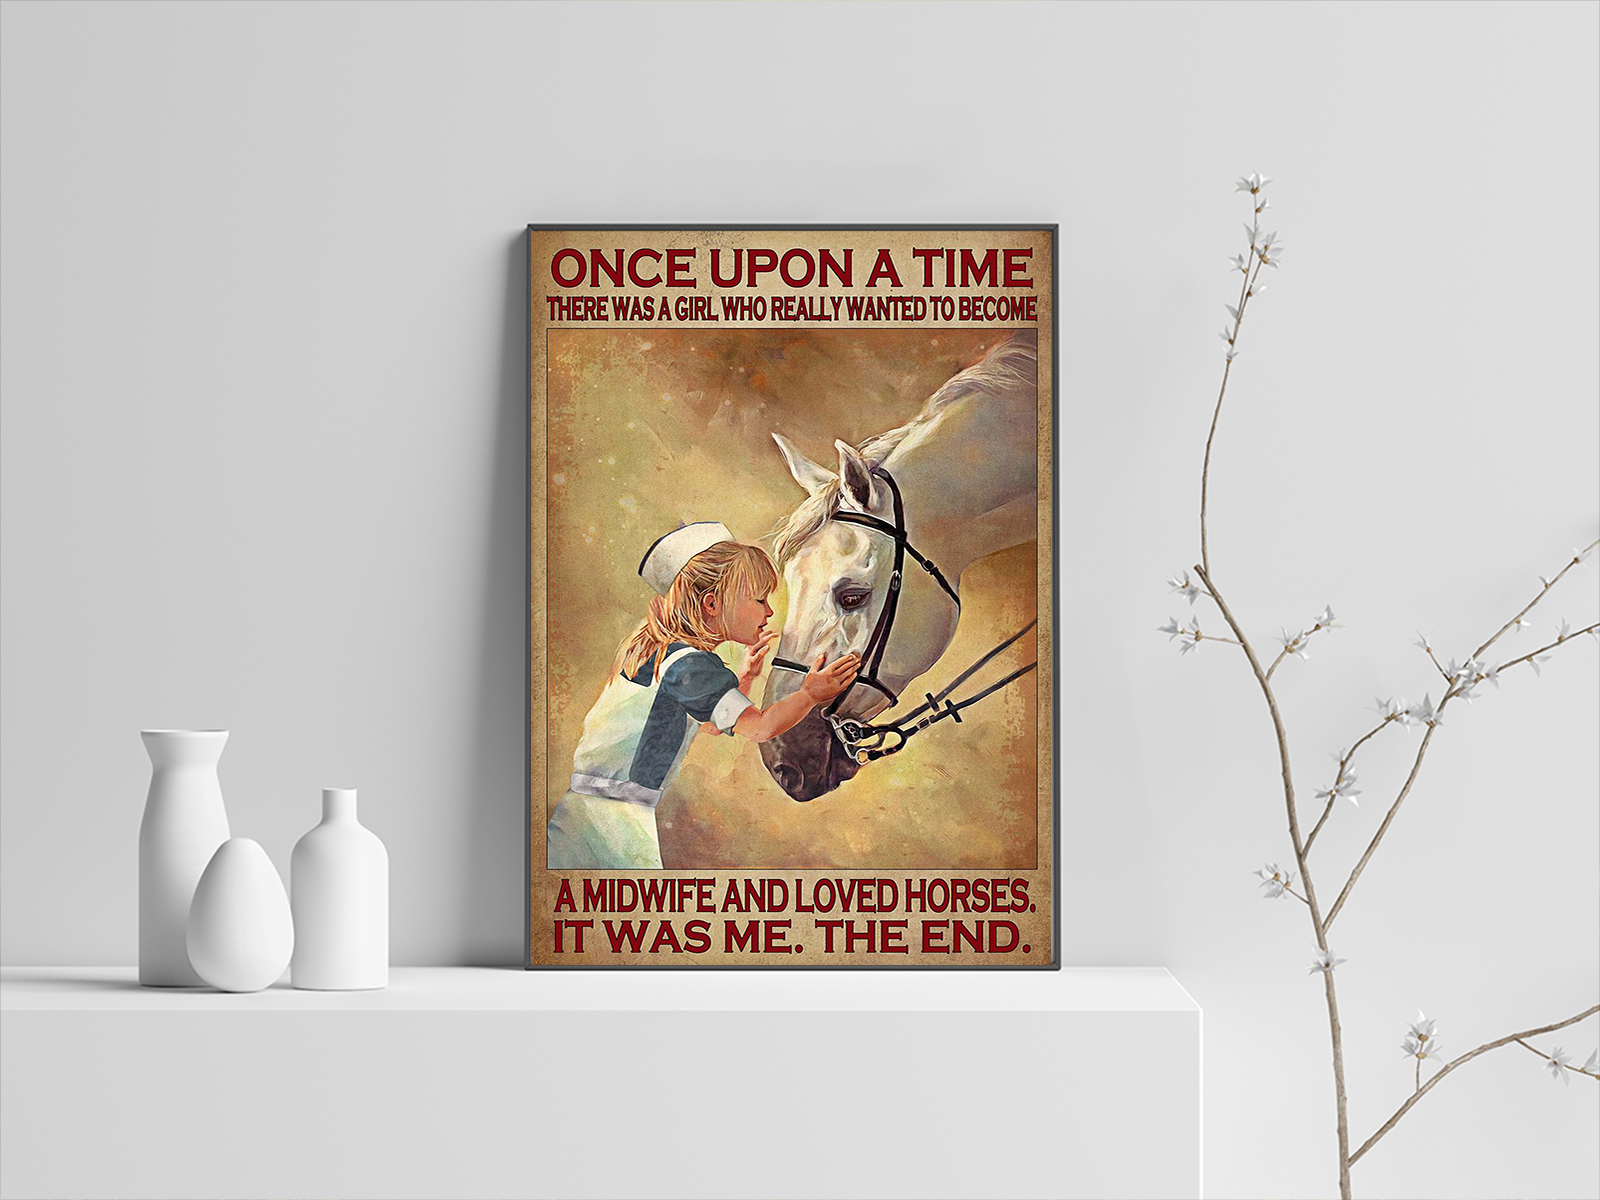 There was a girl who really wanted to become a midwife and loved horses poster